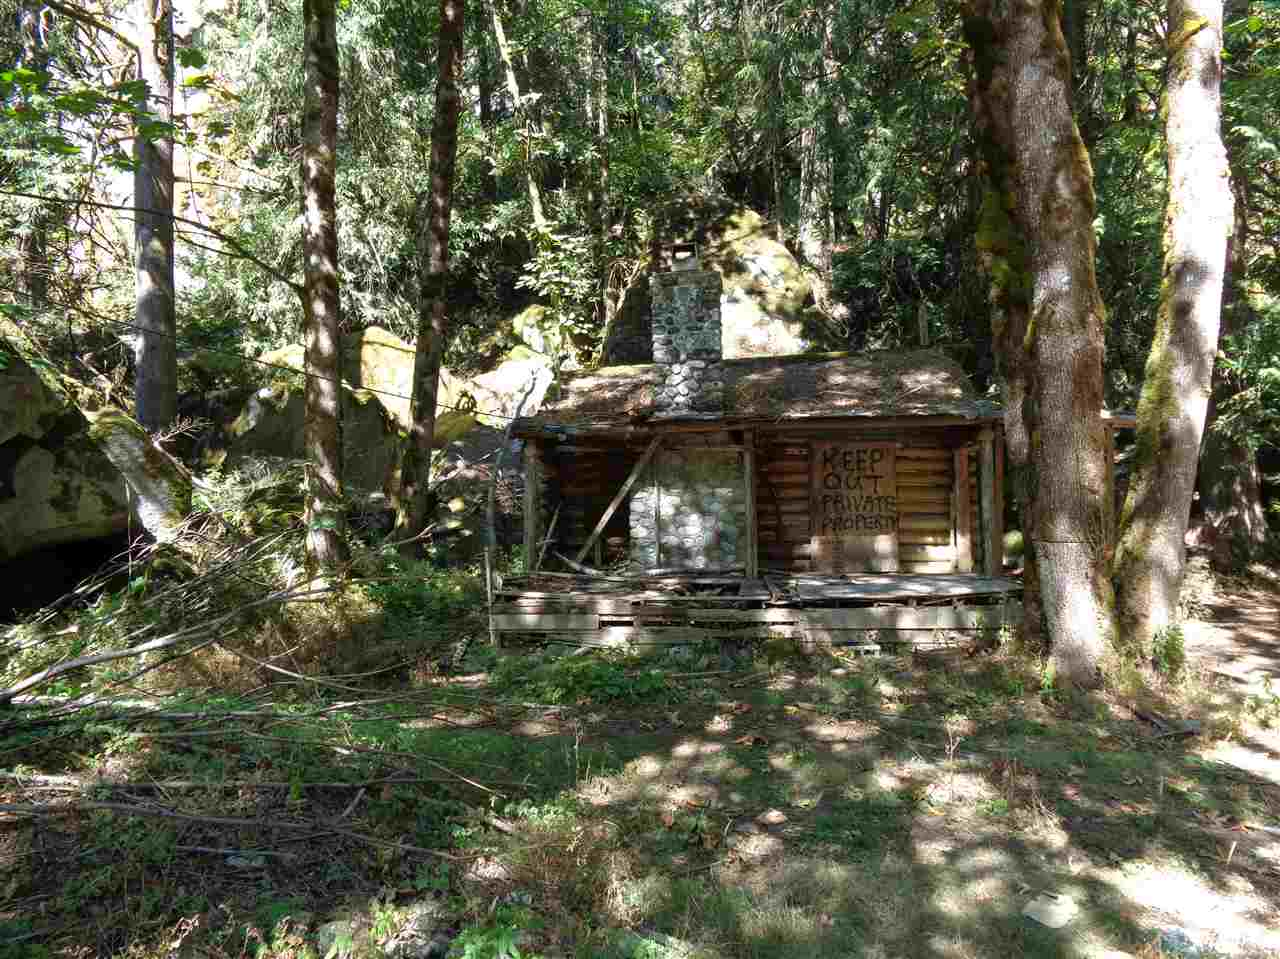 Water front property on Silverhope Creek! 8.77 acres, flat usable portion is approx. 1/2 acre. 2 older log cabins on the property - Bring your ideas! The seller has an active water licence.